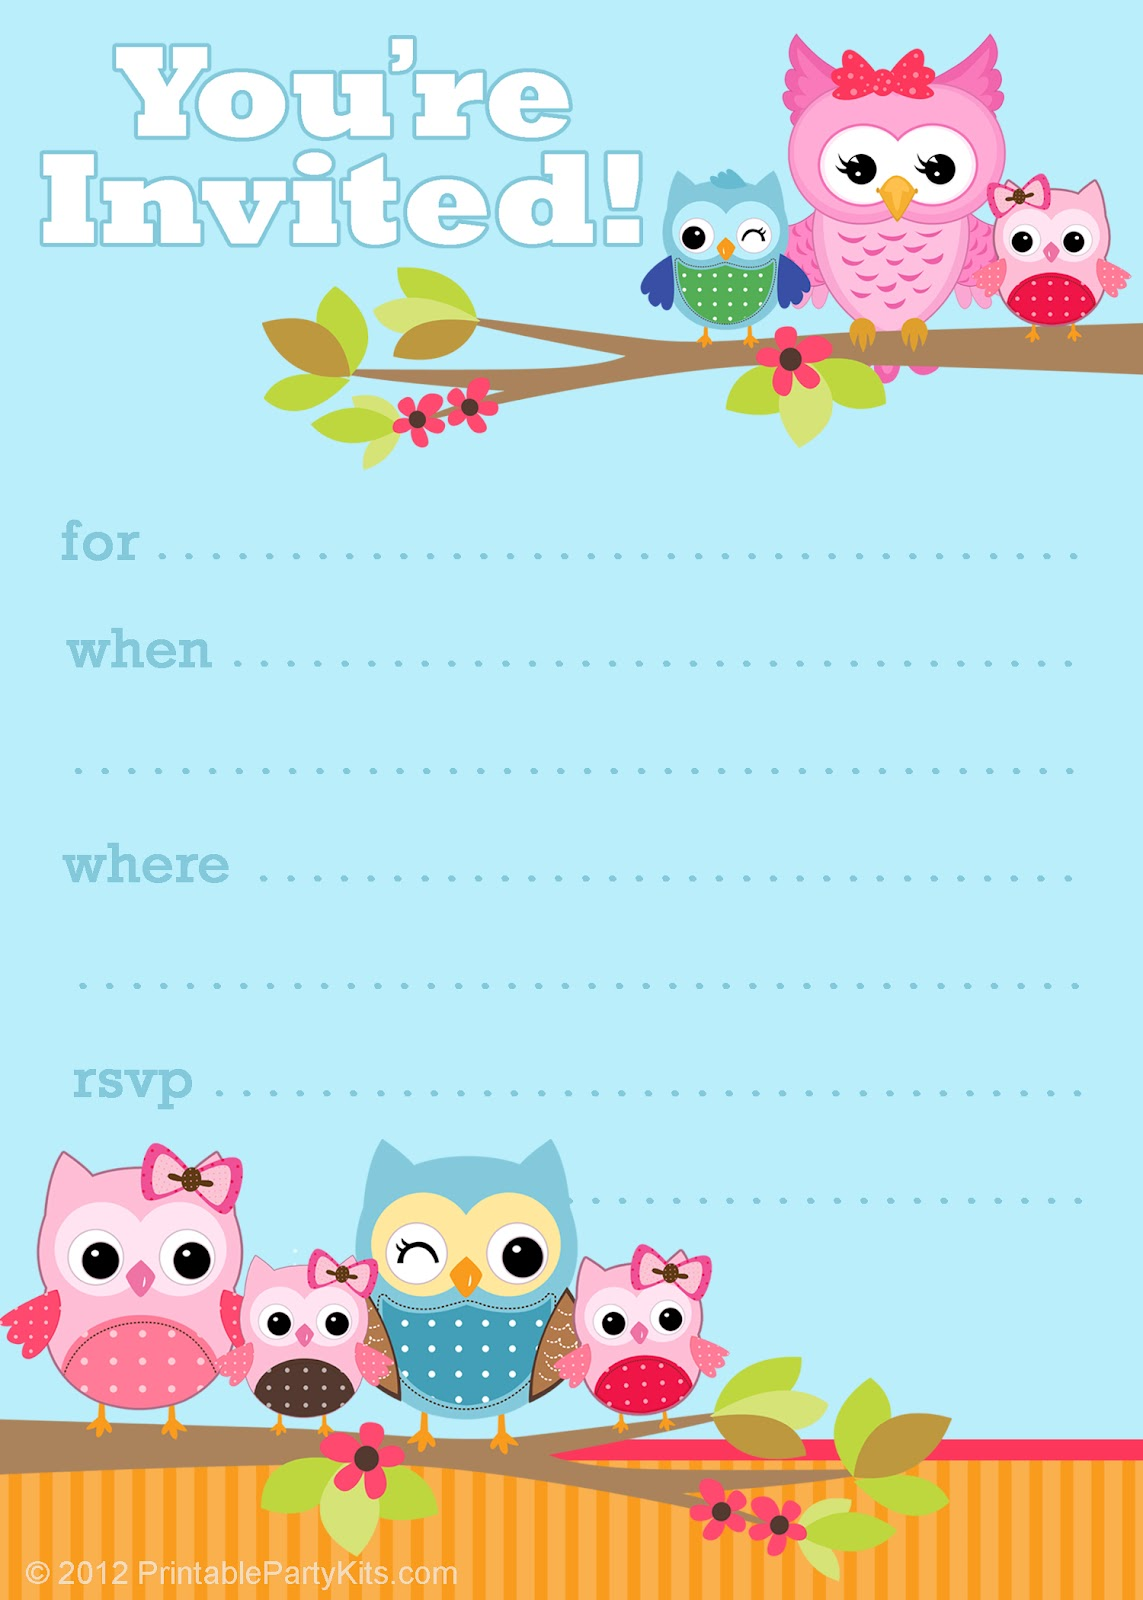 free printable birthday invitation cards templates ; 0411555c5fb821a3bbc6ed6cd56cb6cd